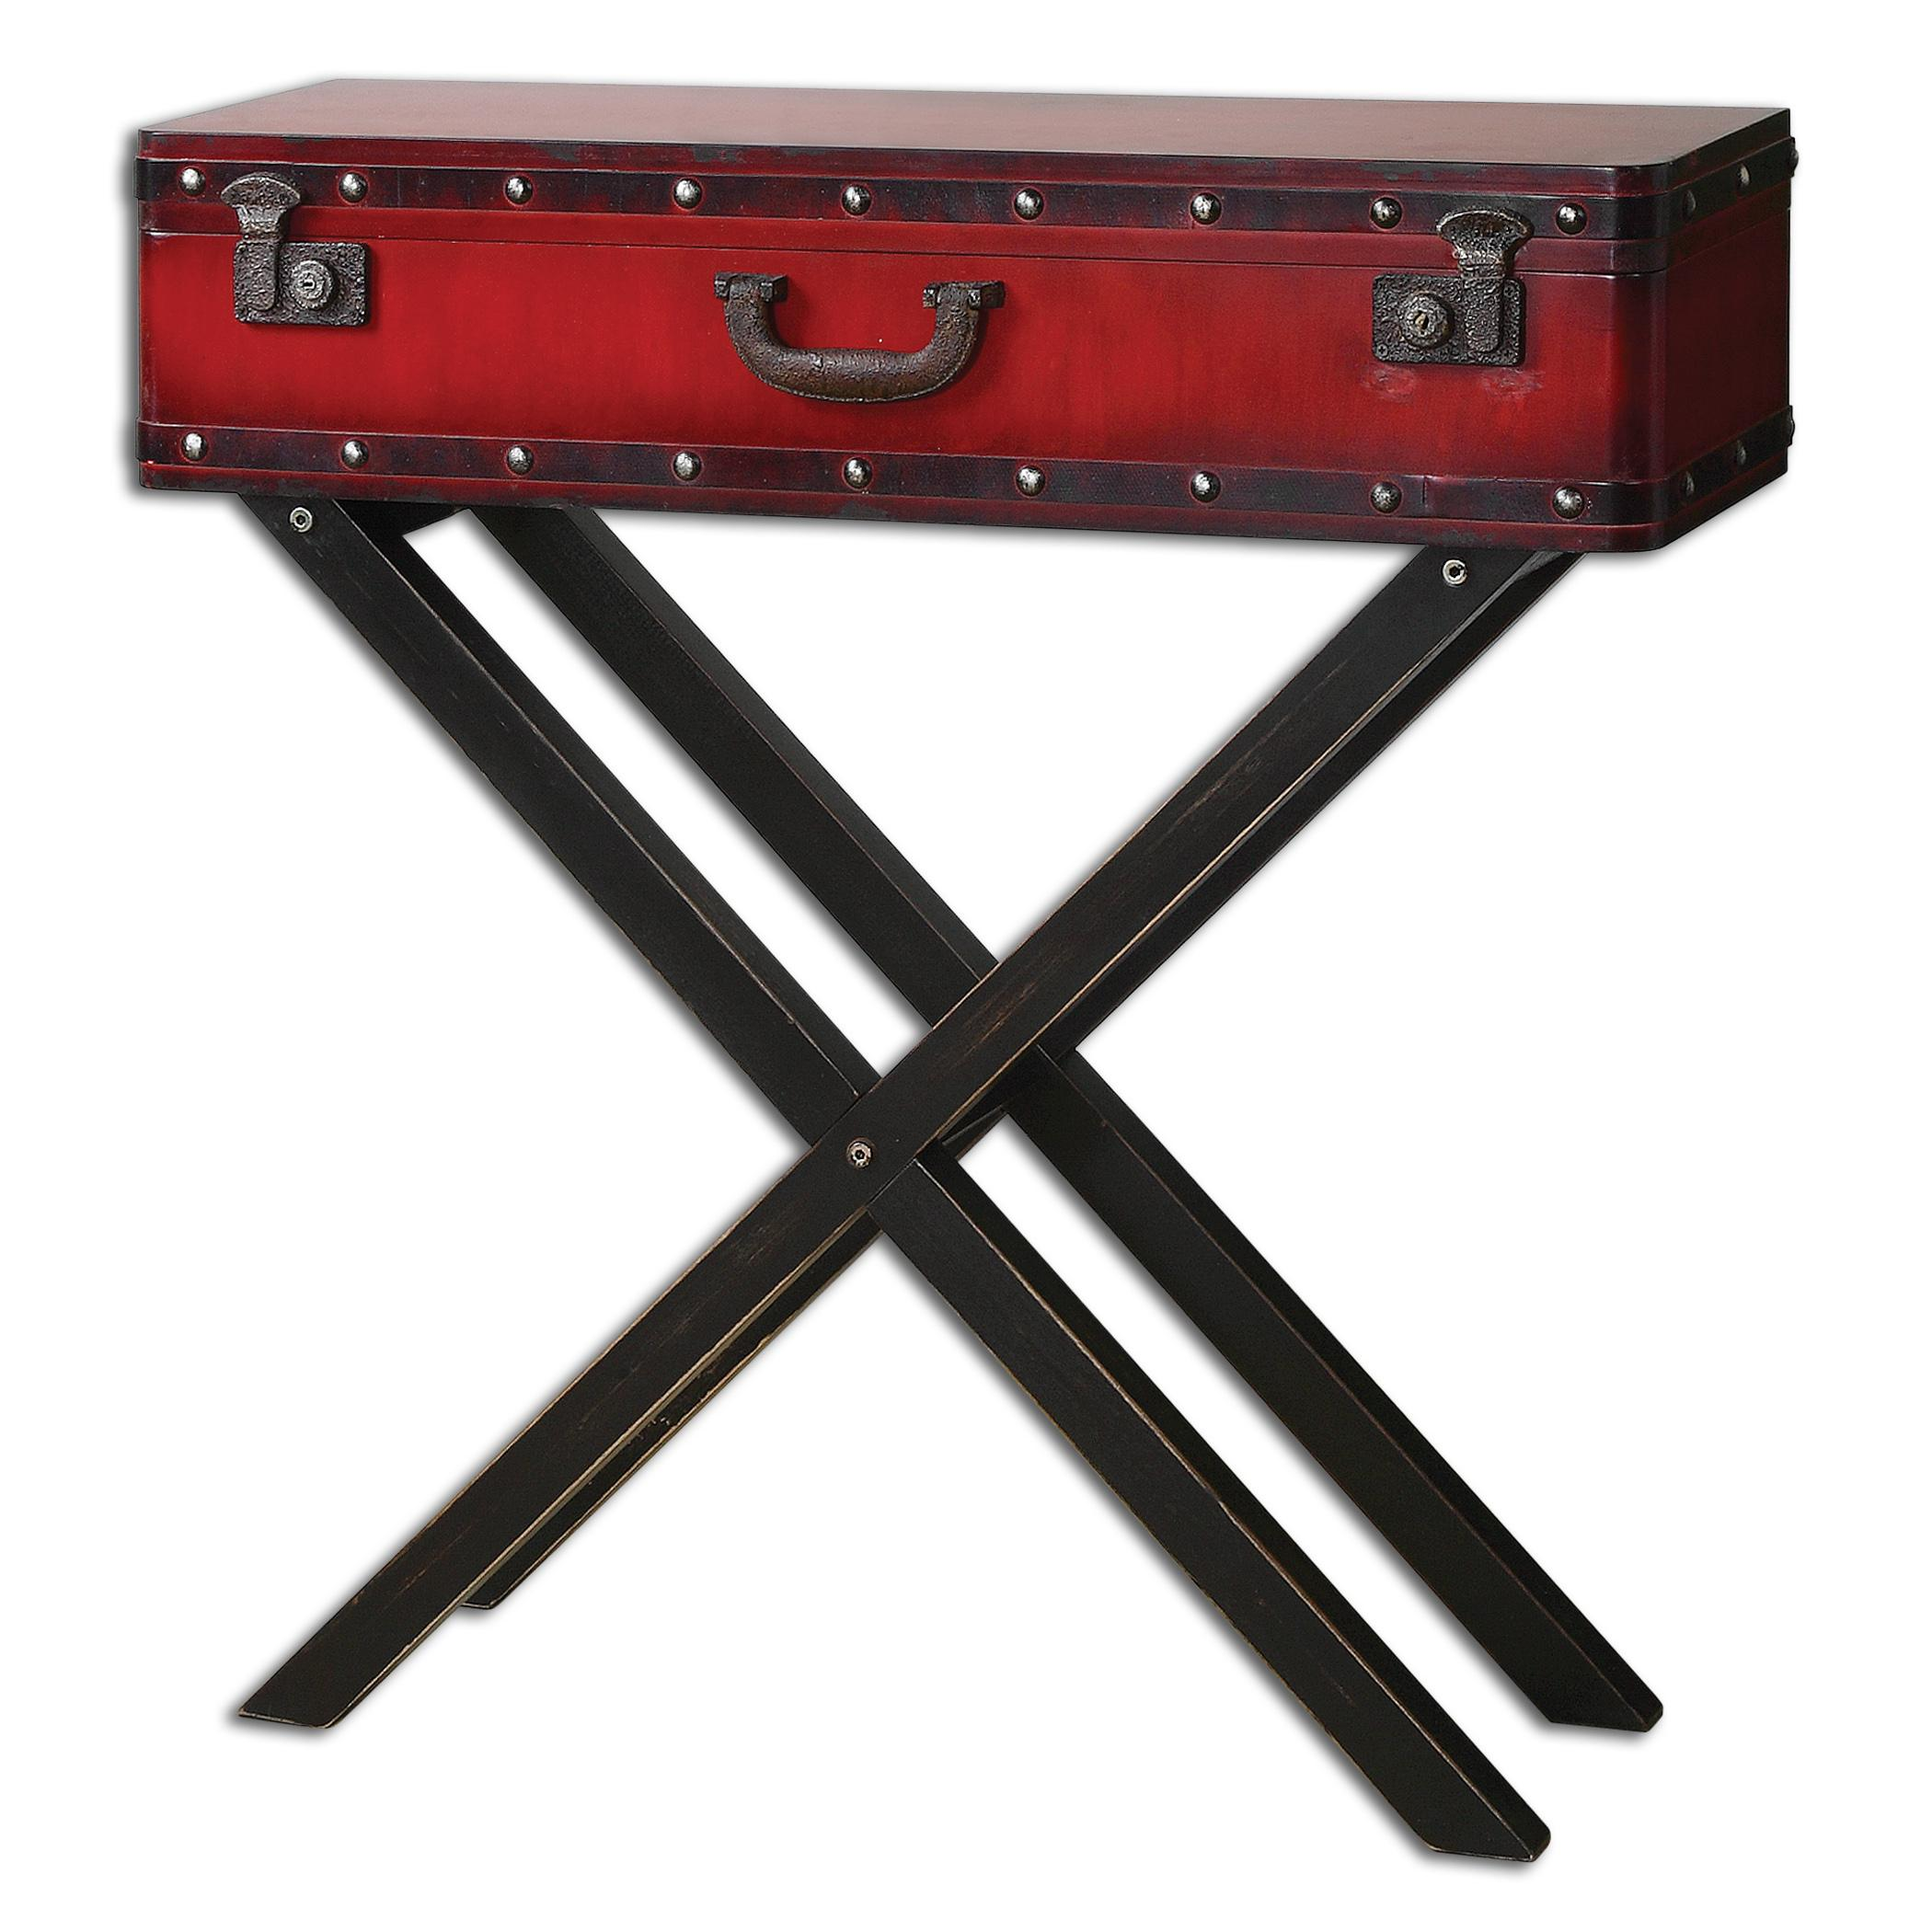 Uttermost Accent Furniture Taggart Red Console Table - Item Number: 24379